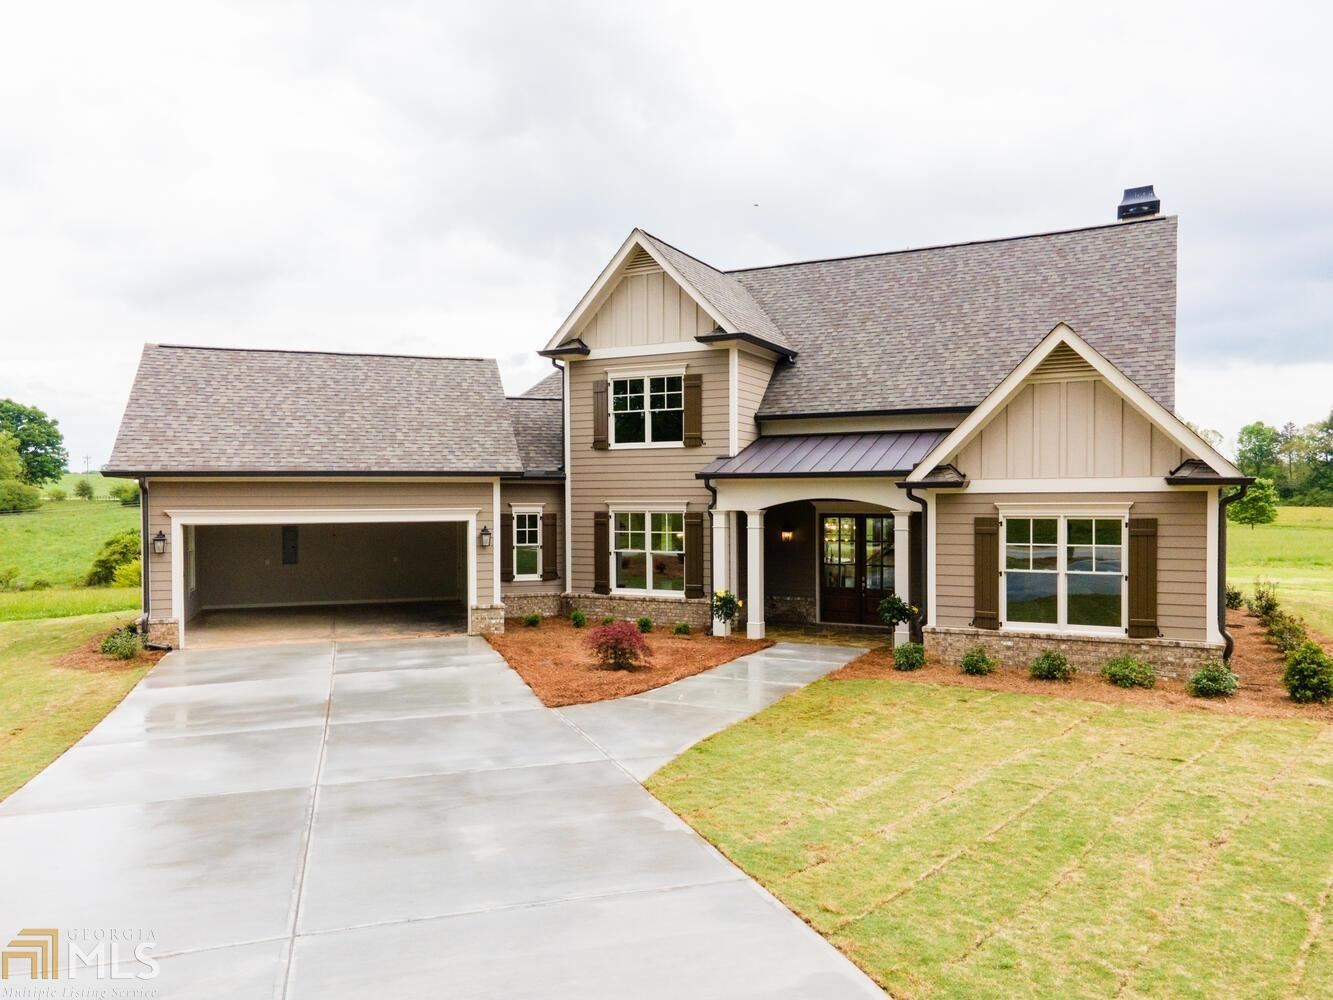 652 Meadow Run, Clarkesville, GA 30523 - MLS#: 8904759